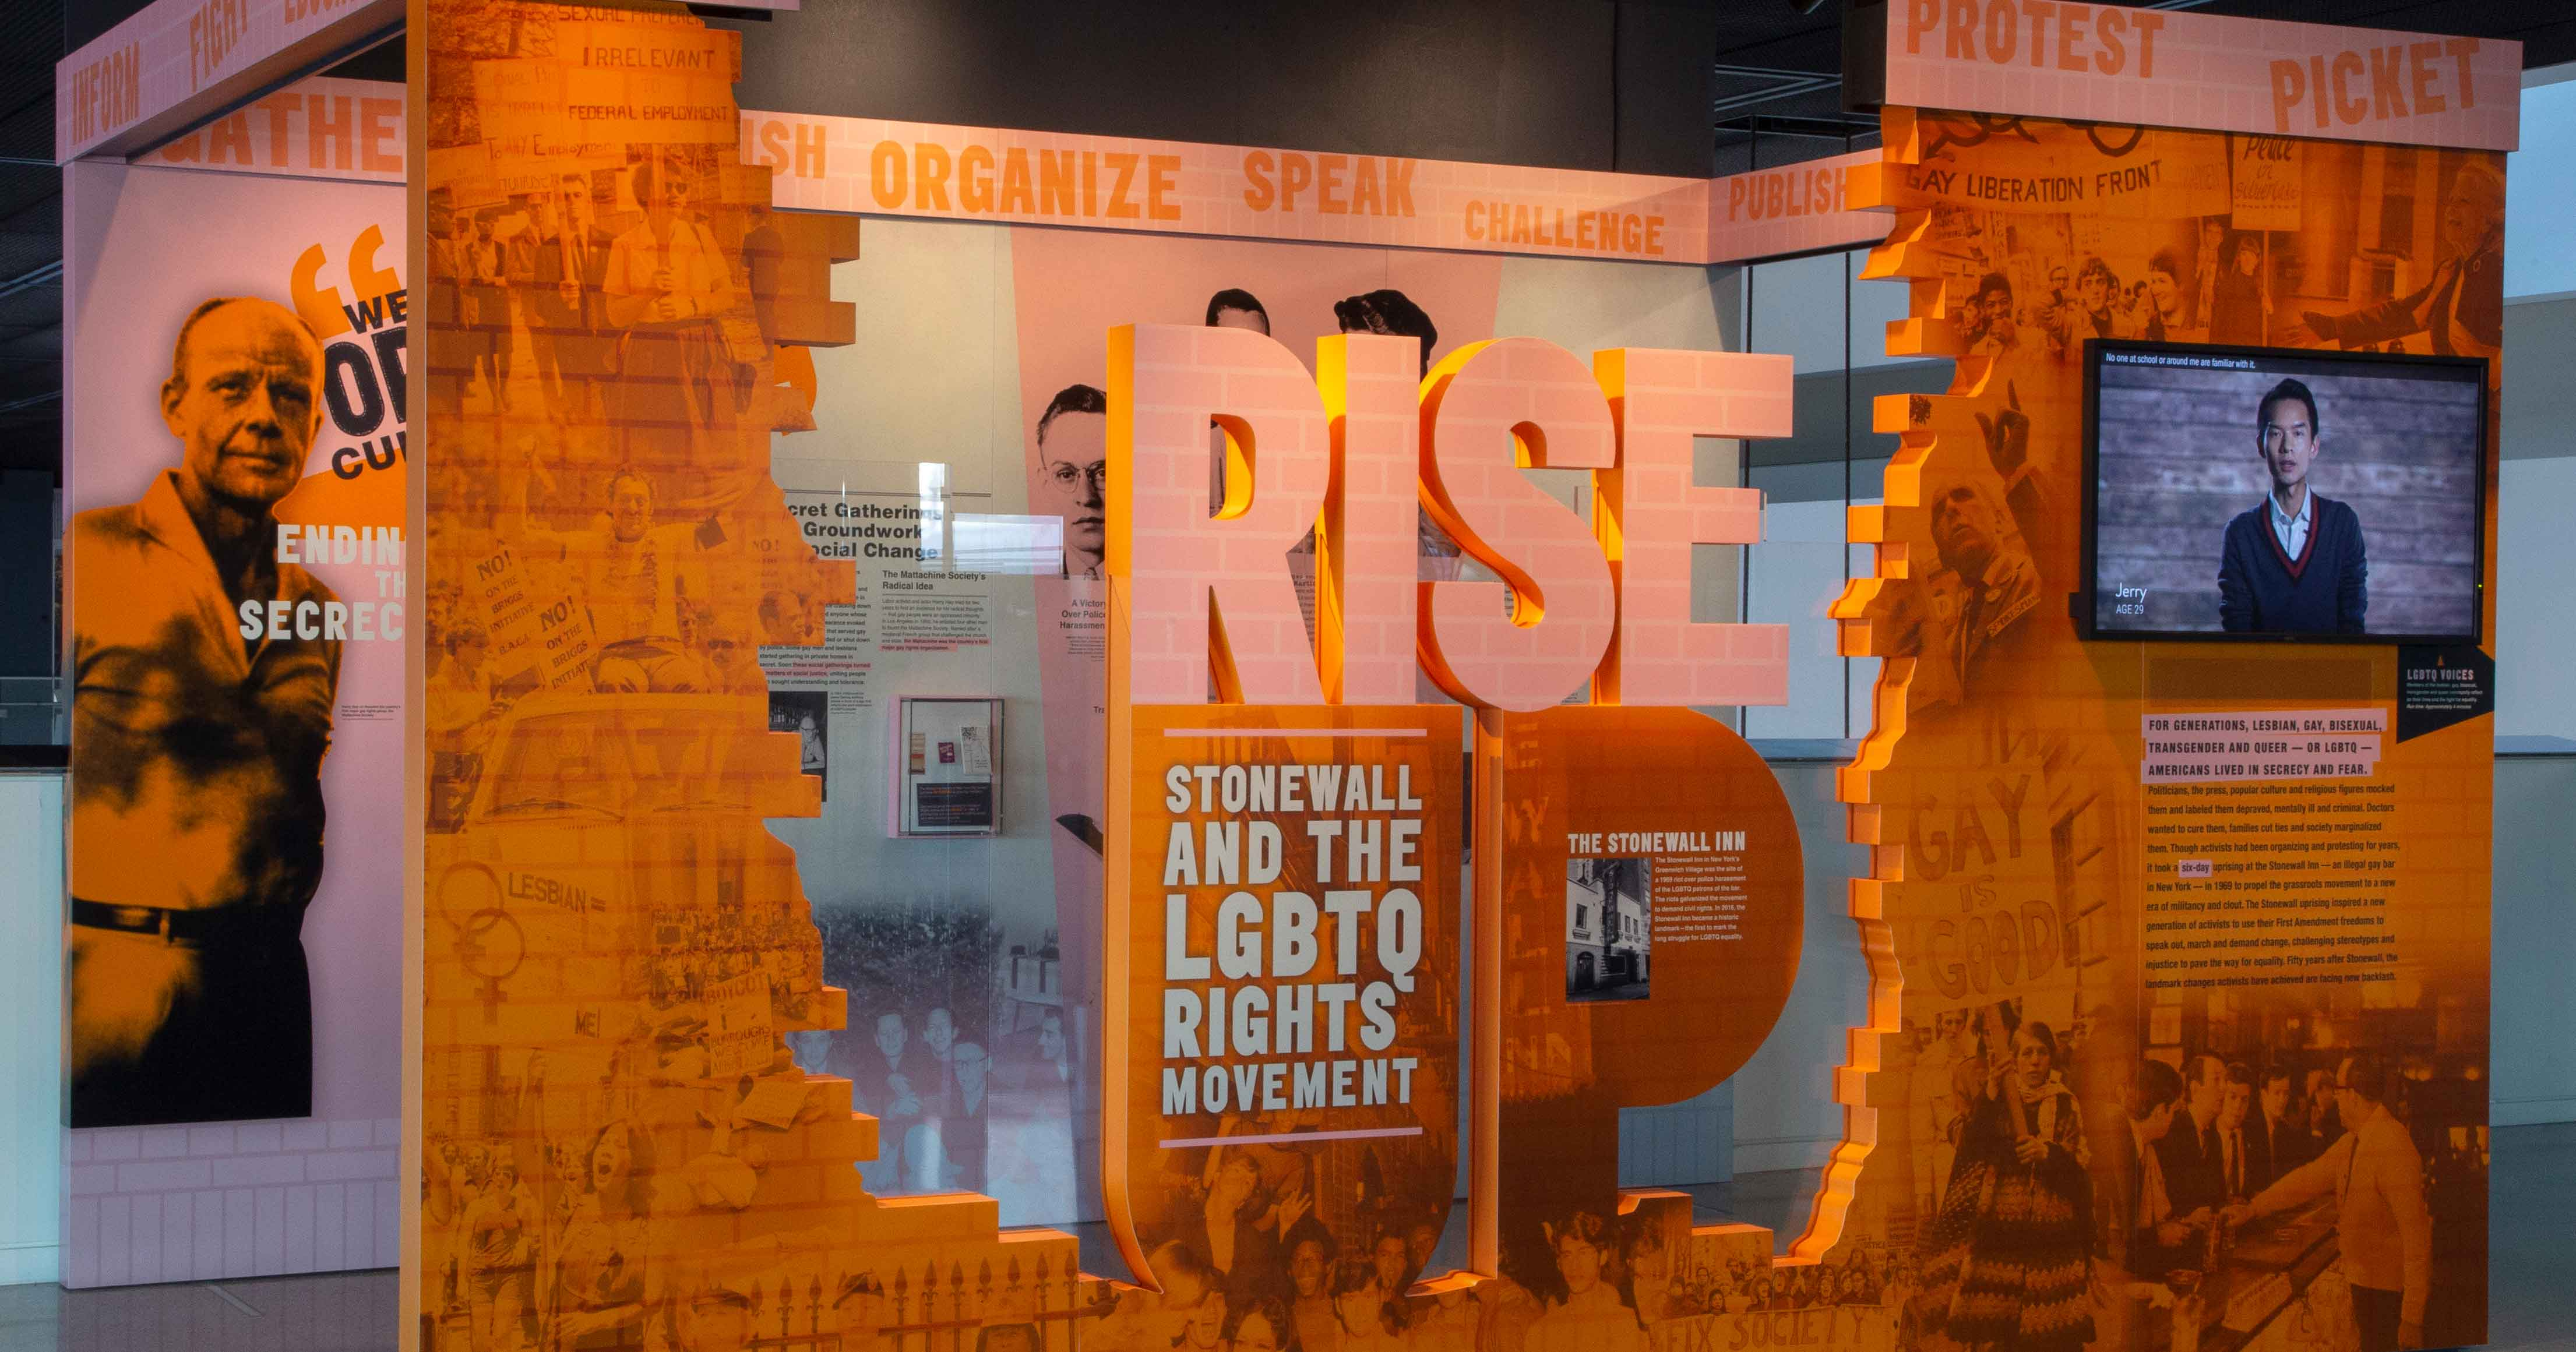 MoPOP Partners With Seattle Pride to Host 'Rise Up: Stonewall and the LGBTQ  Rights Movement' Icons Panel June 26 | Museum of Pop Culture